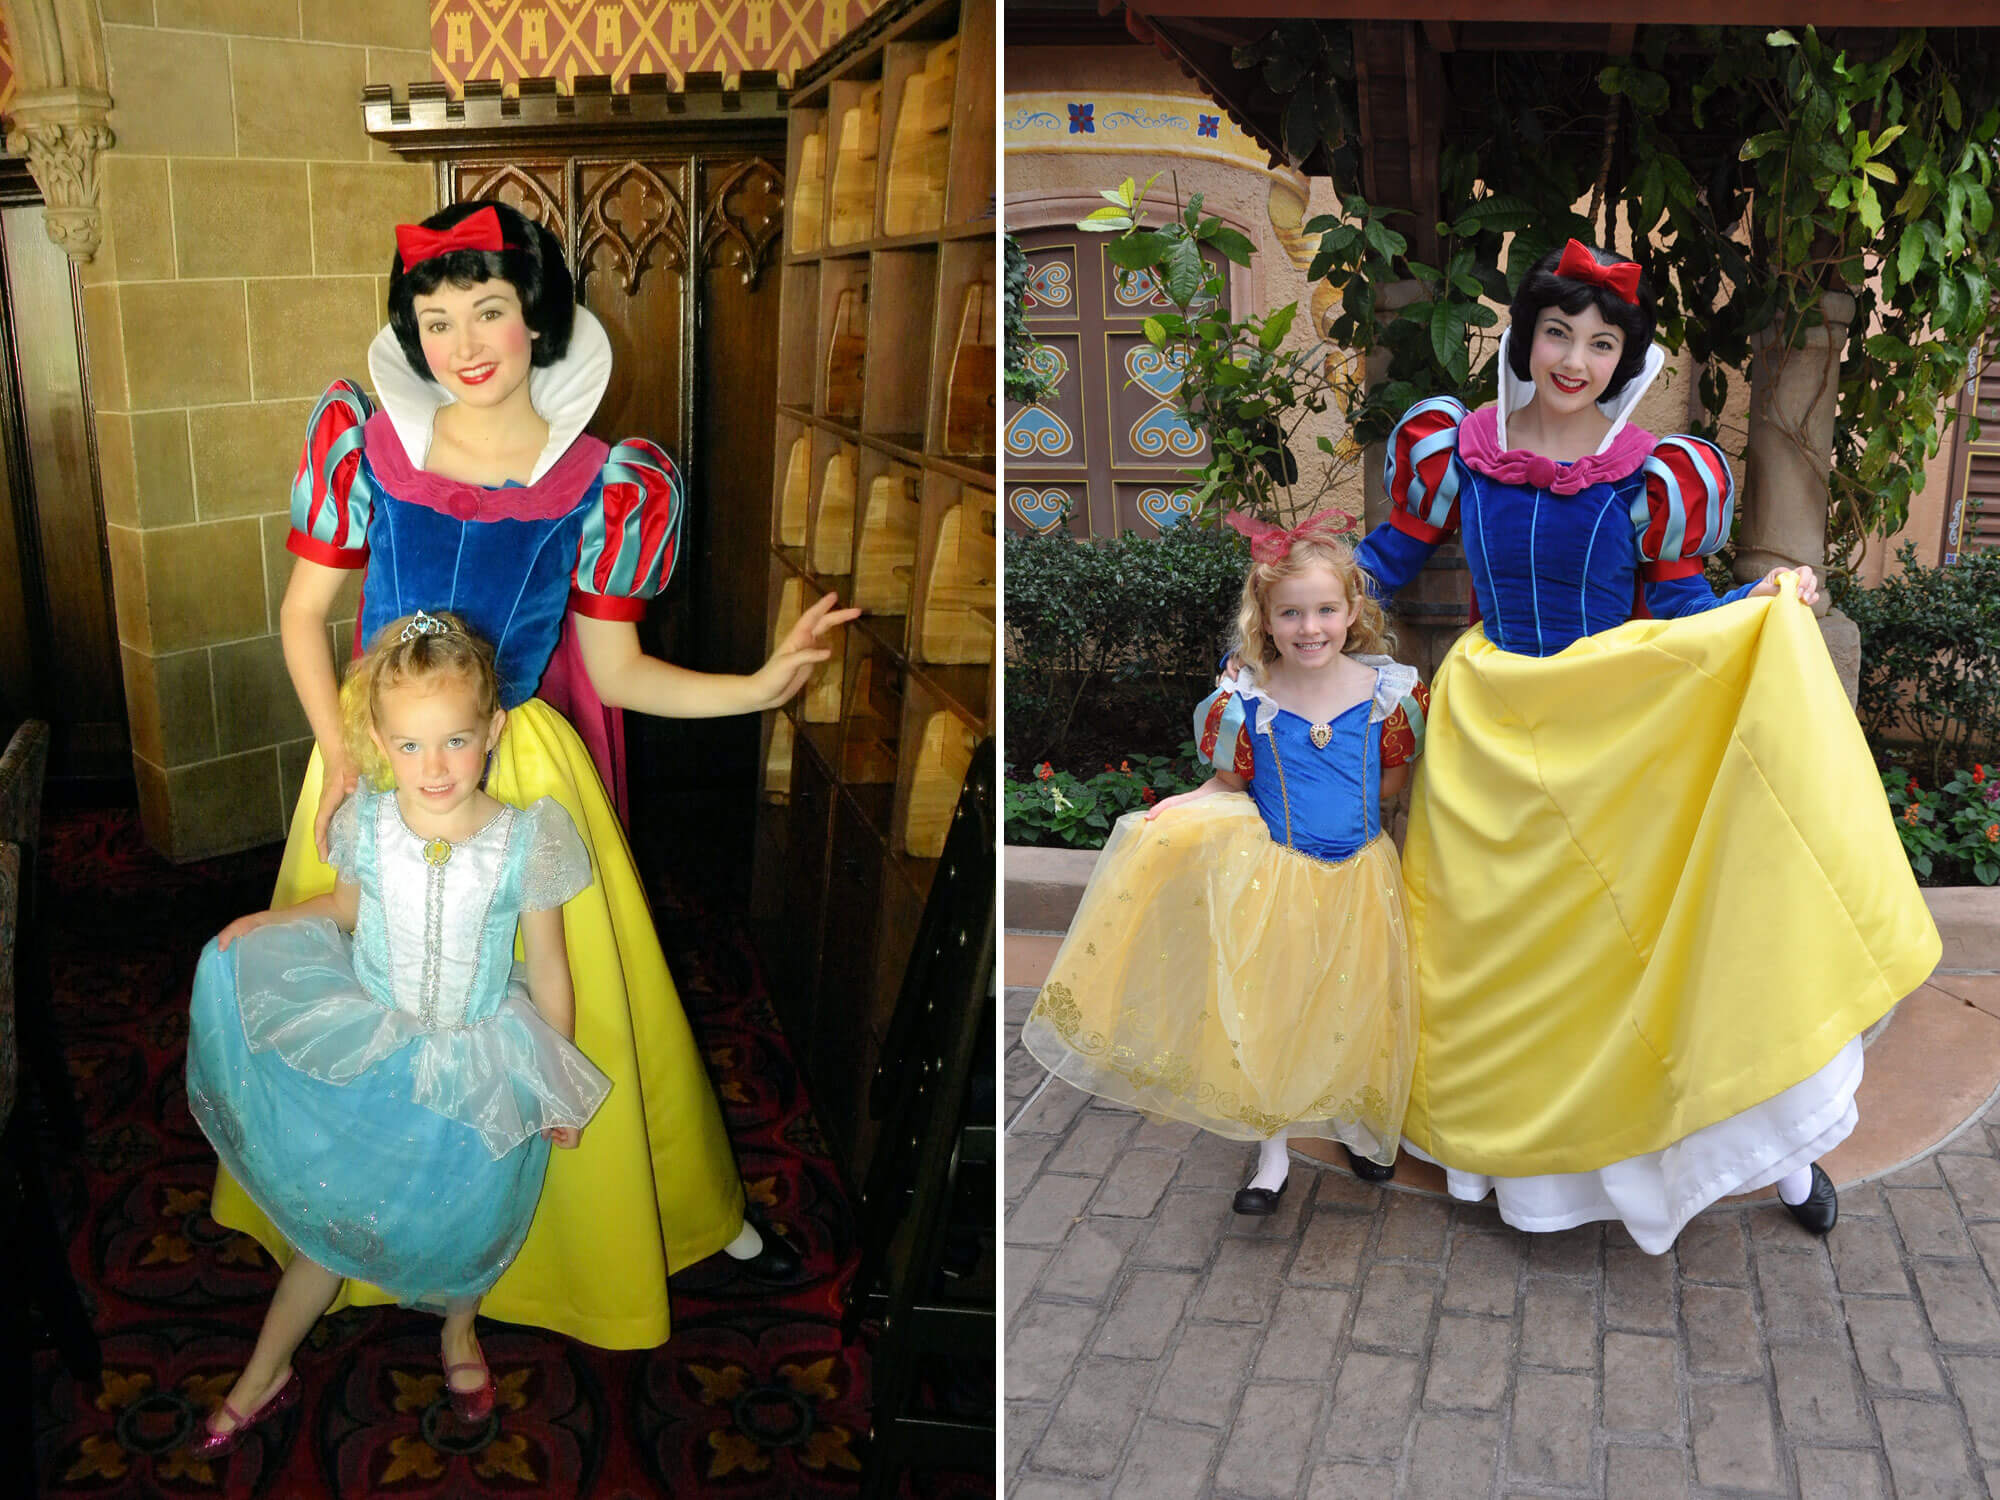 Disney world character dining the pros and cons plus photo tips snow white character dining m4hsunfo